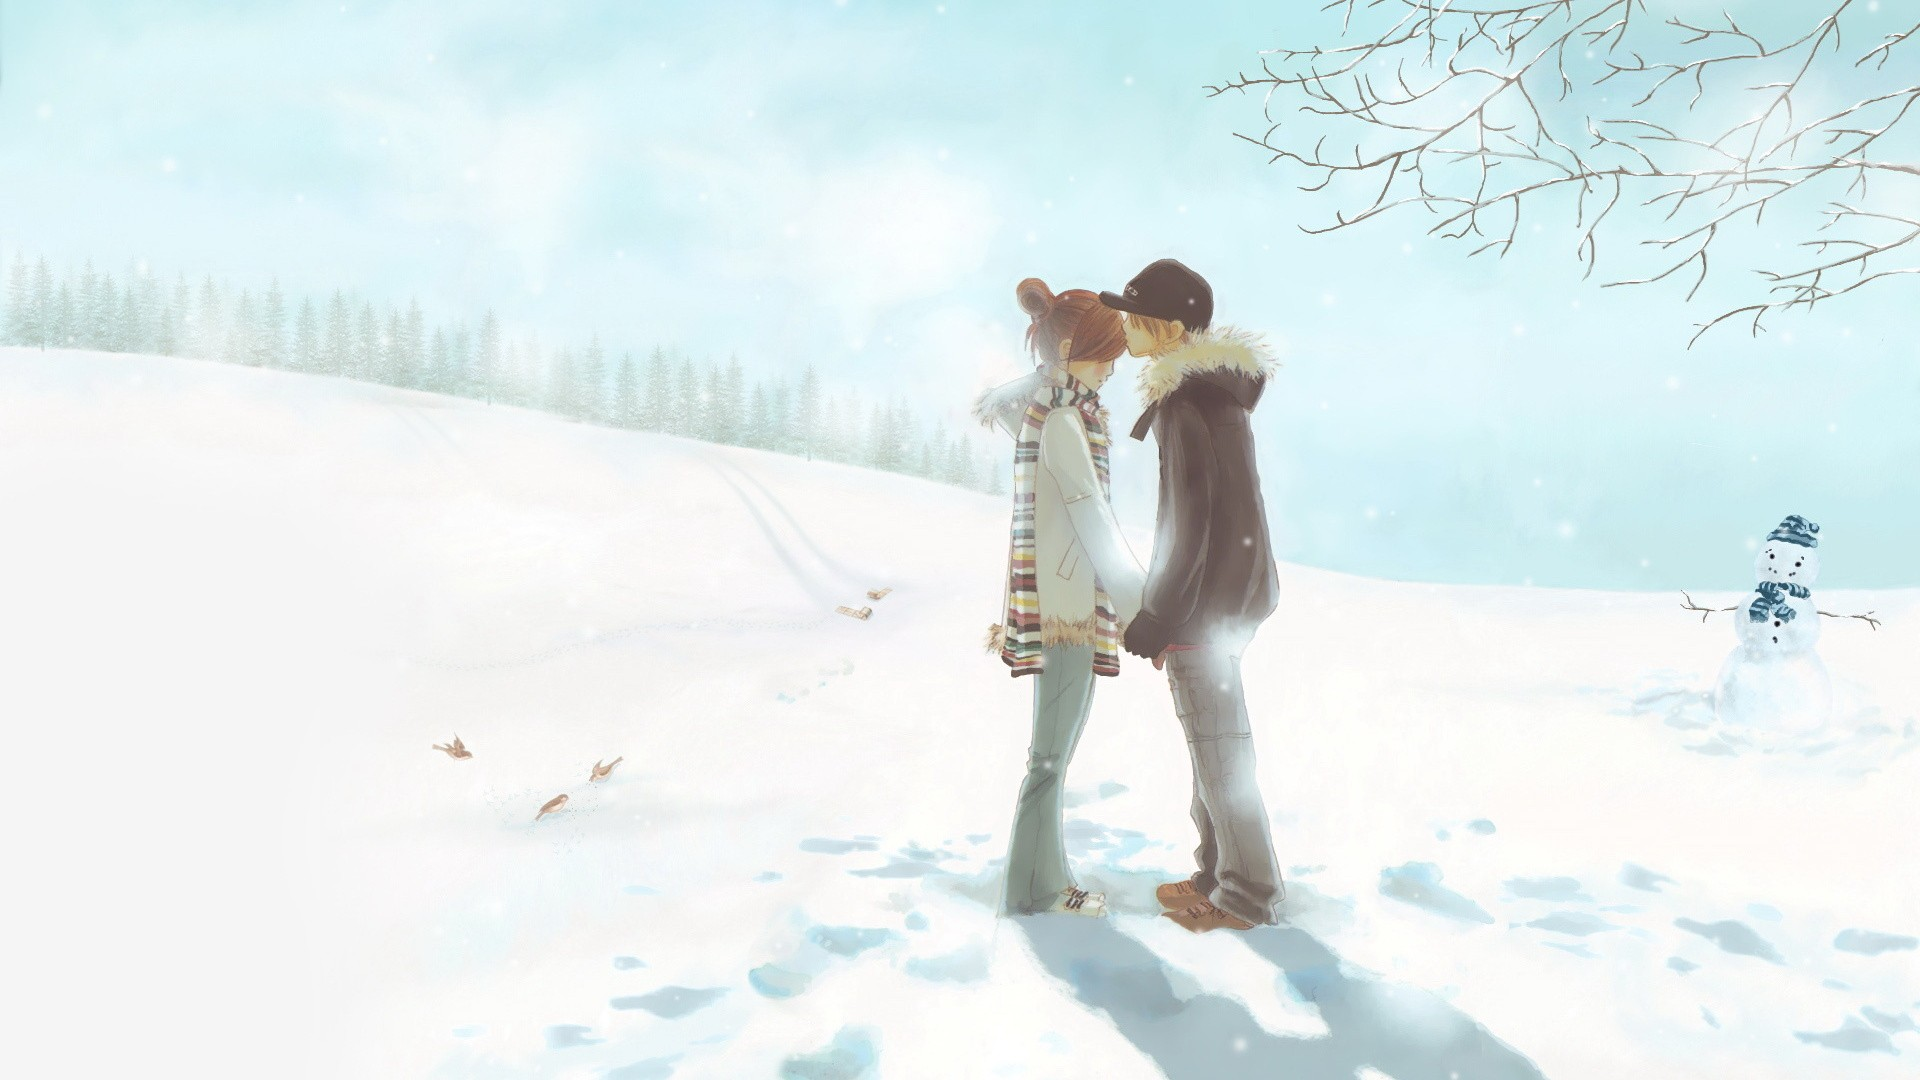 lovely anime winter wallpaper 42571